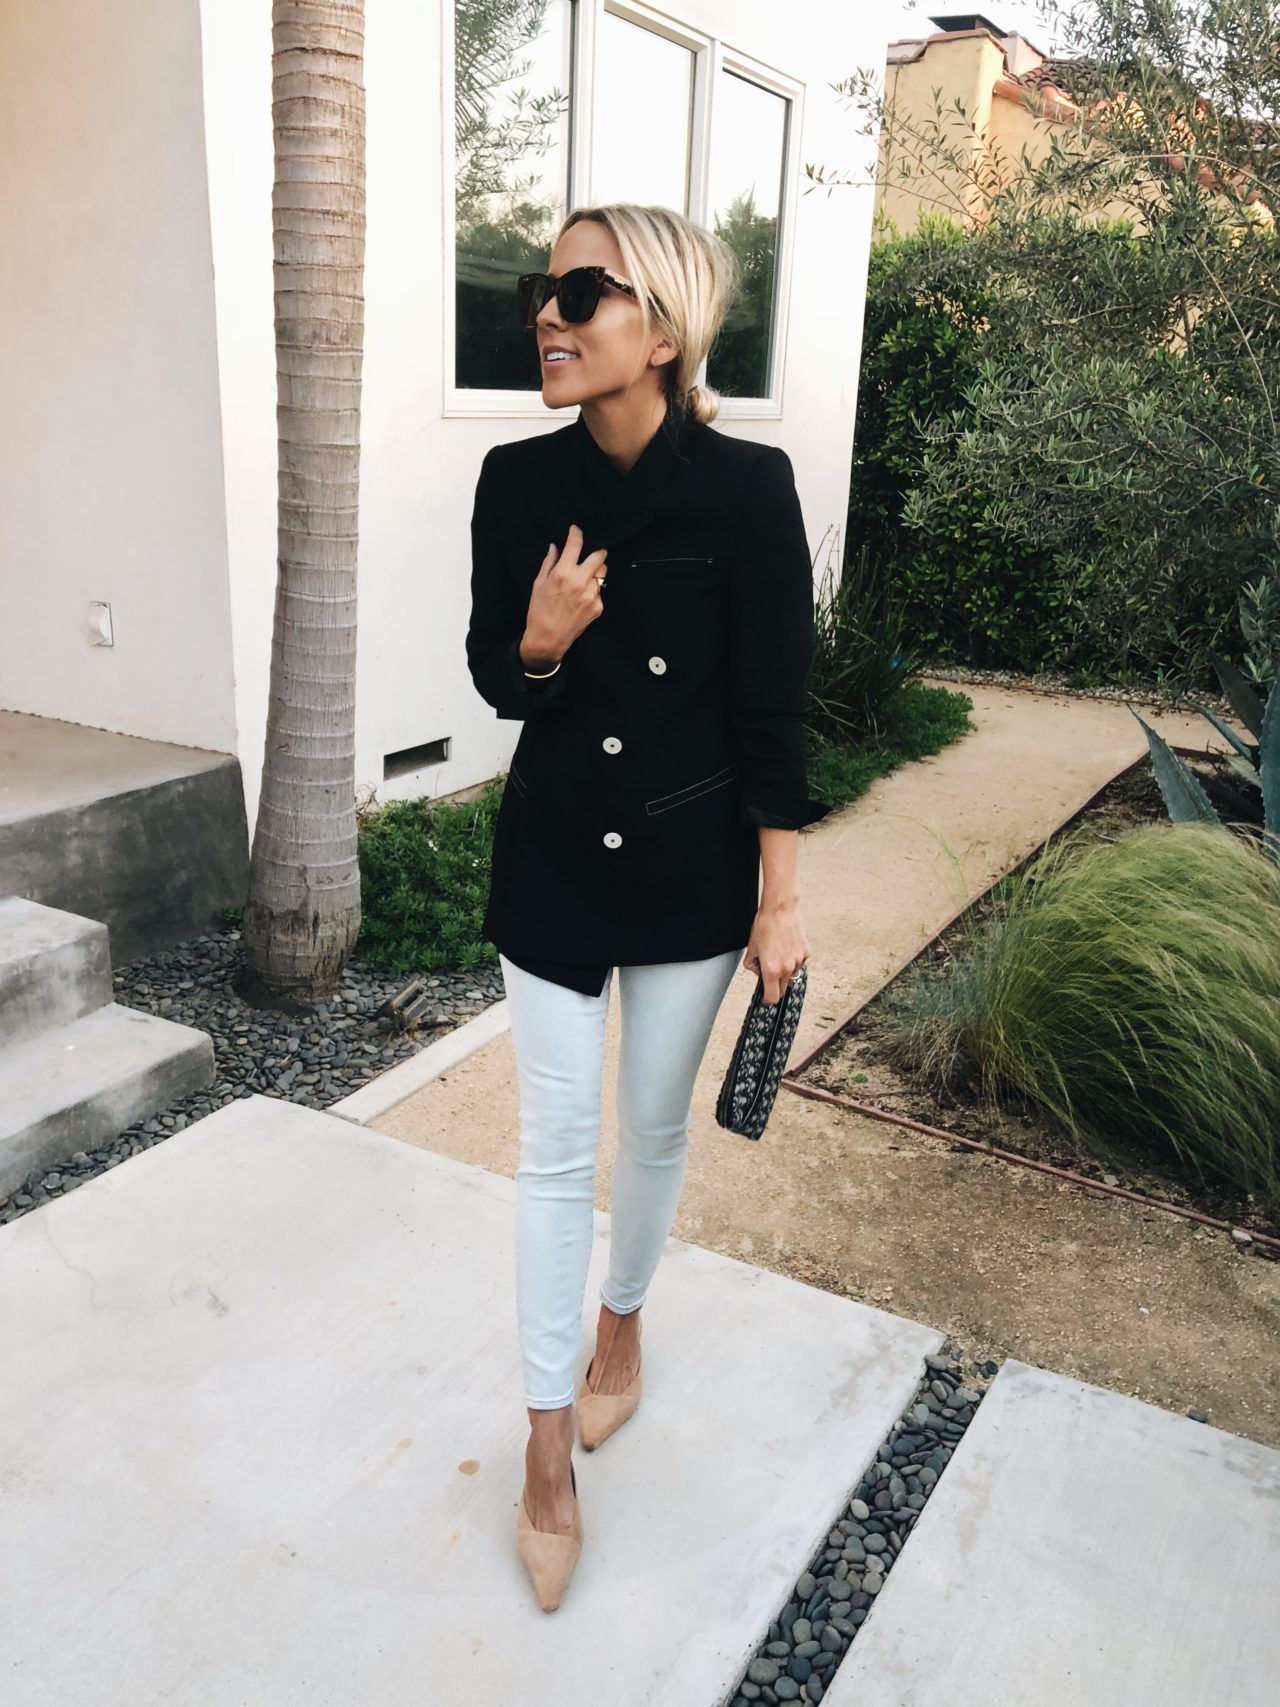 Double Date Damsel In Dior My Outfit Casual Date Night Outfit Fashion [ 1707 x 1280 Pixel ]